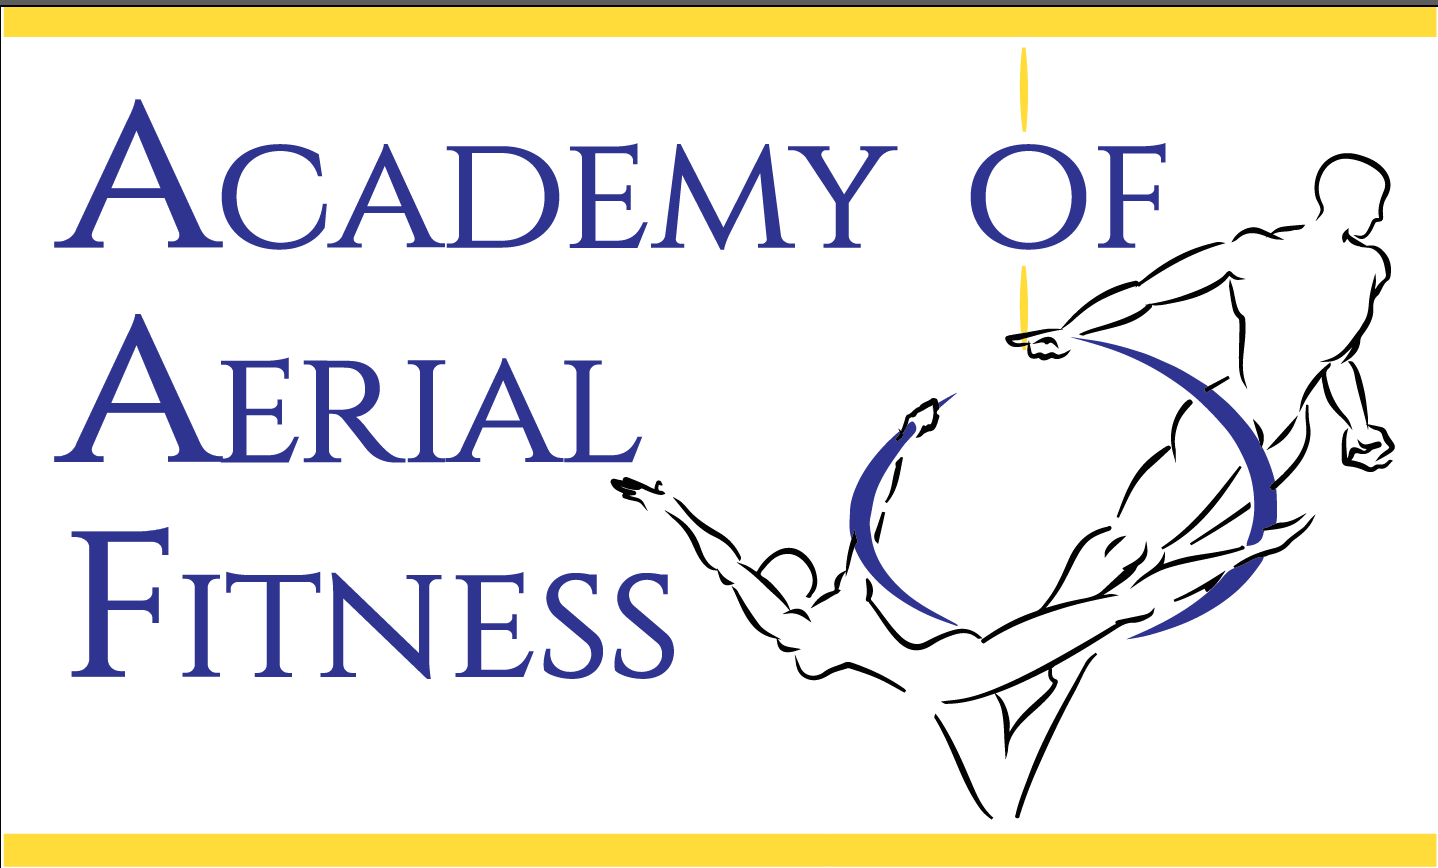 Academy of Aerial Fitness